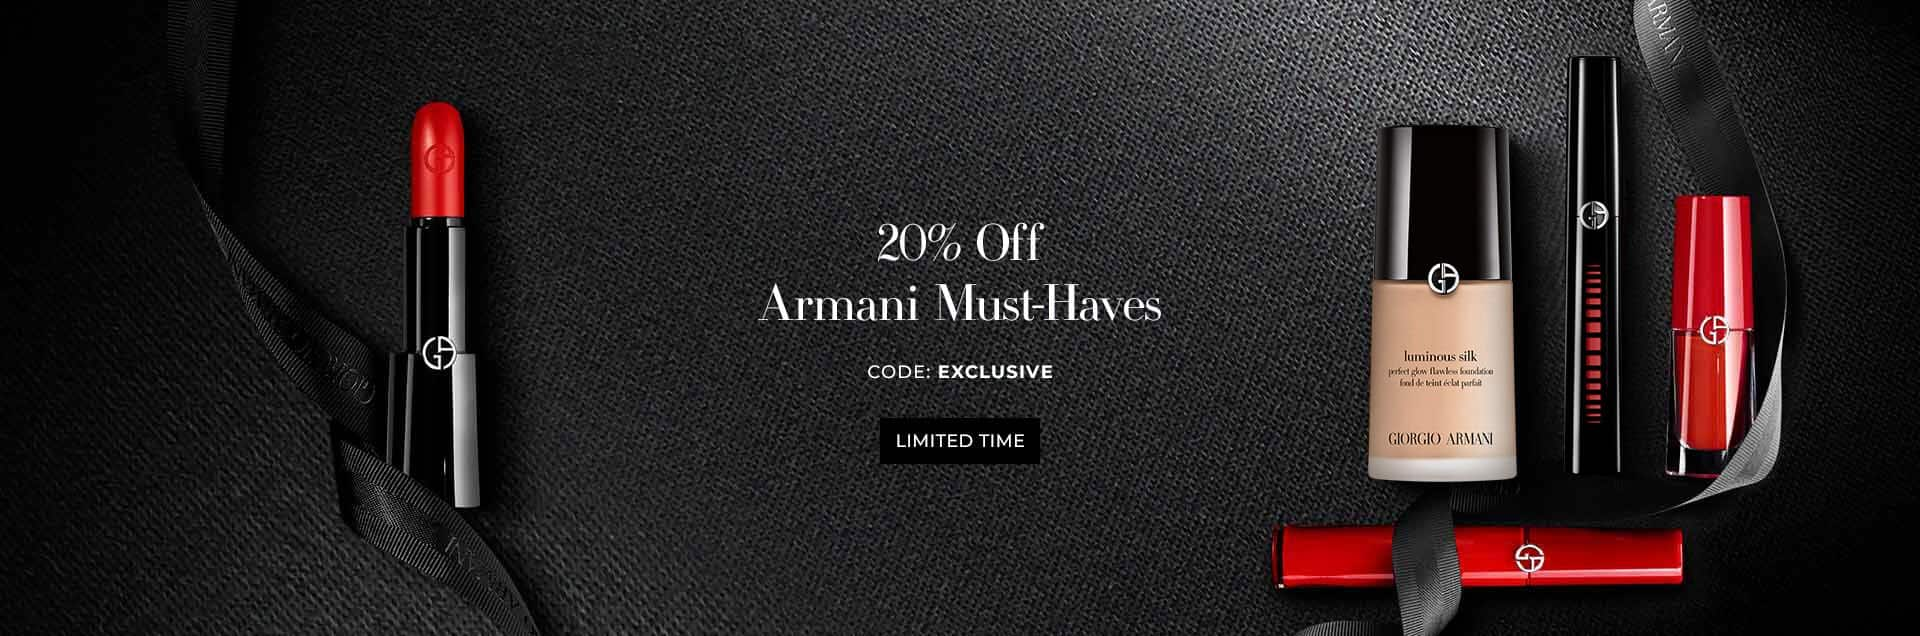 20% off on Armani Prive fragrances for the first time ever